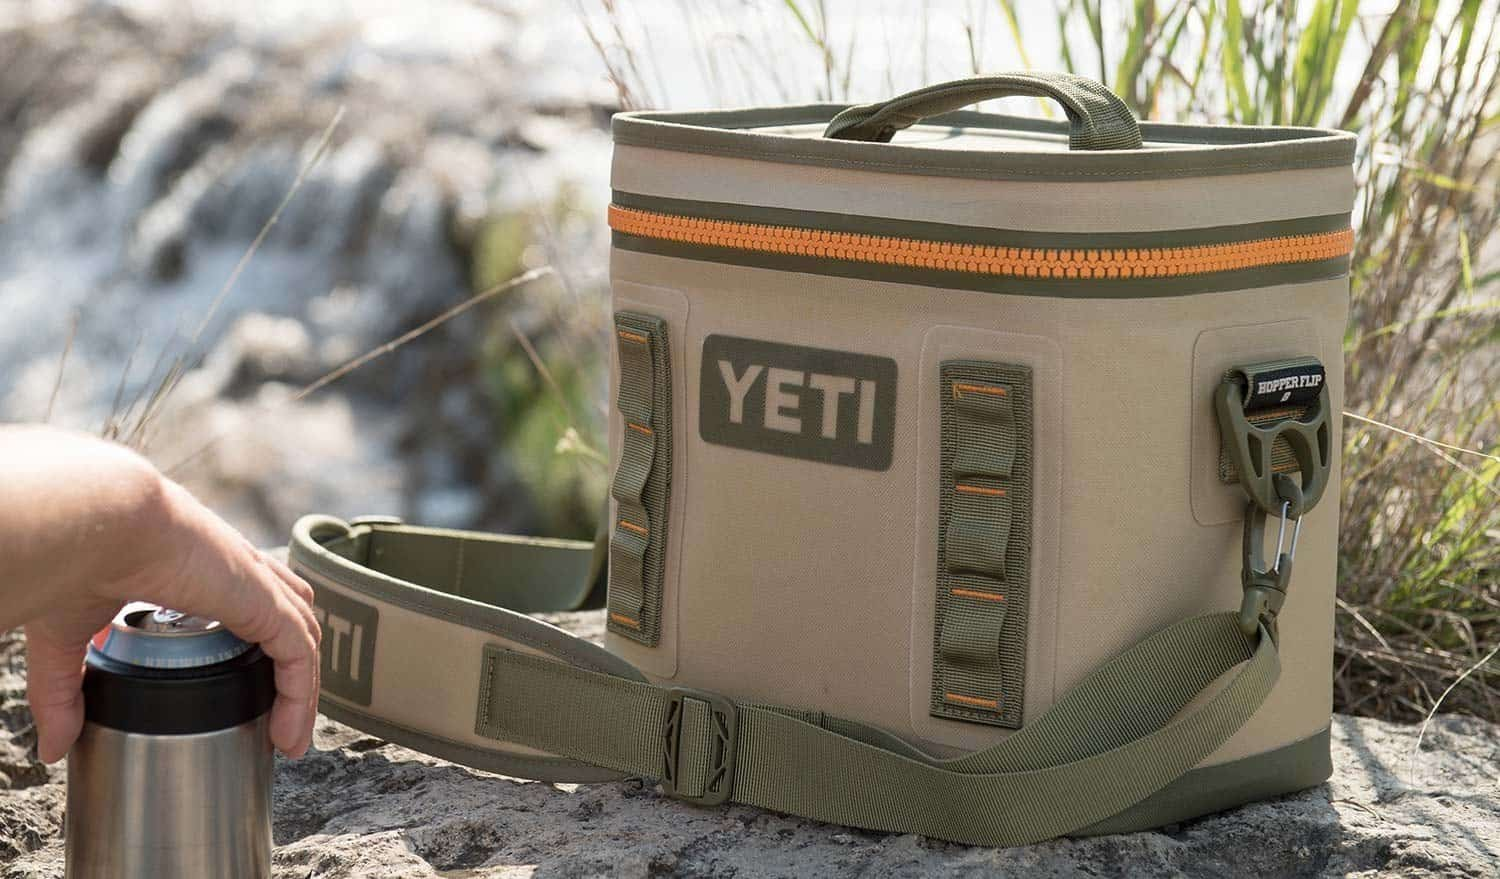 Yeti Cyber Monday Sale >> Yeti Black Friday Cyber Monday Sale Best Deals For 2019